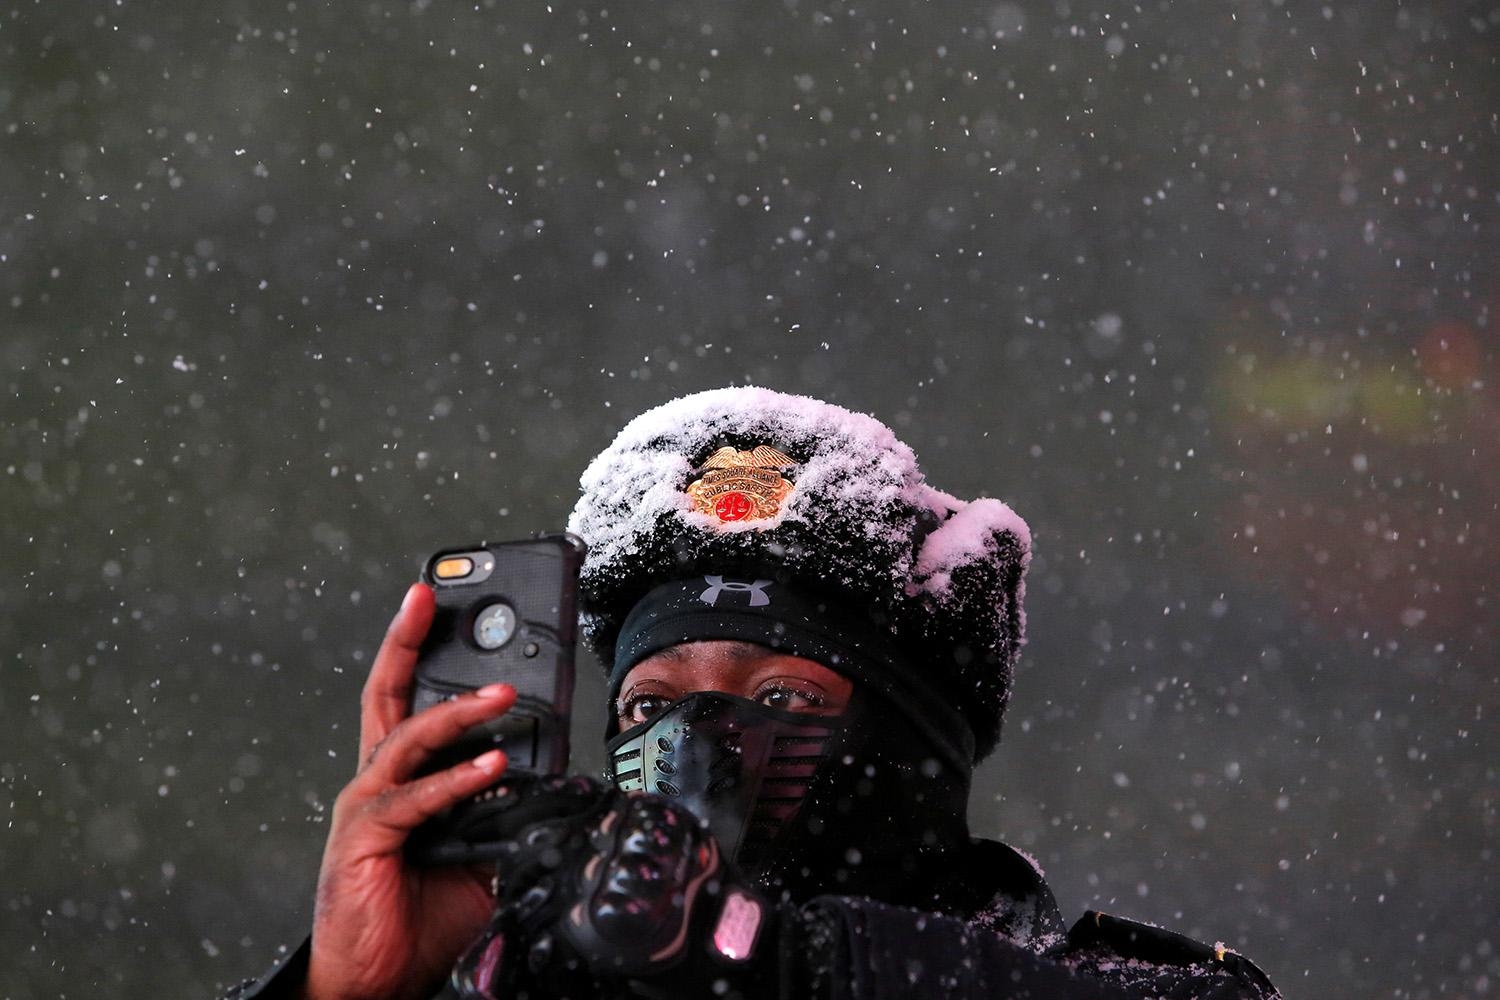 <p>Times Square Public Safety Sergeant Baldwin Davis captures falling snow with his mobile phone during a winter storm in New York, March 14, 2017. (Andrew Kelly/Reuters) </p>